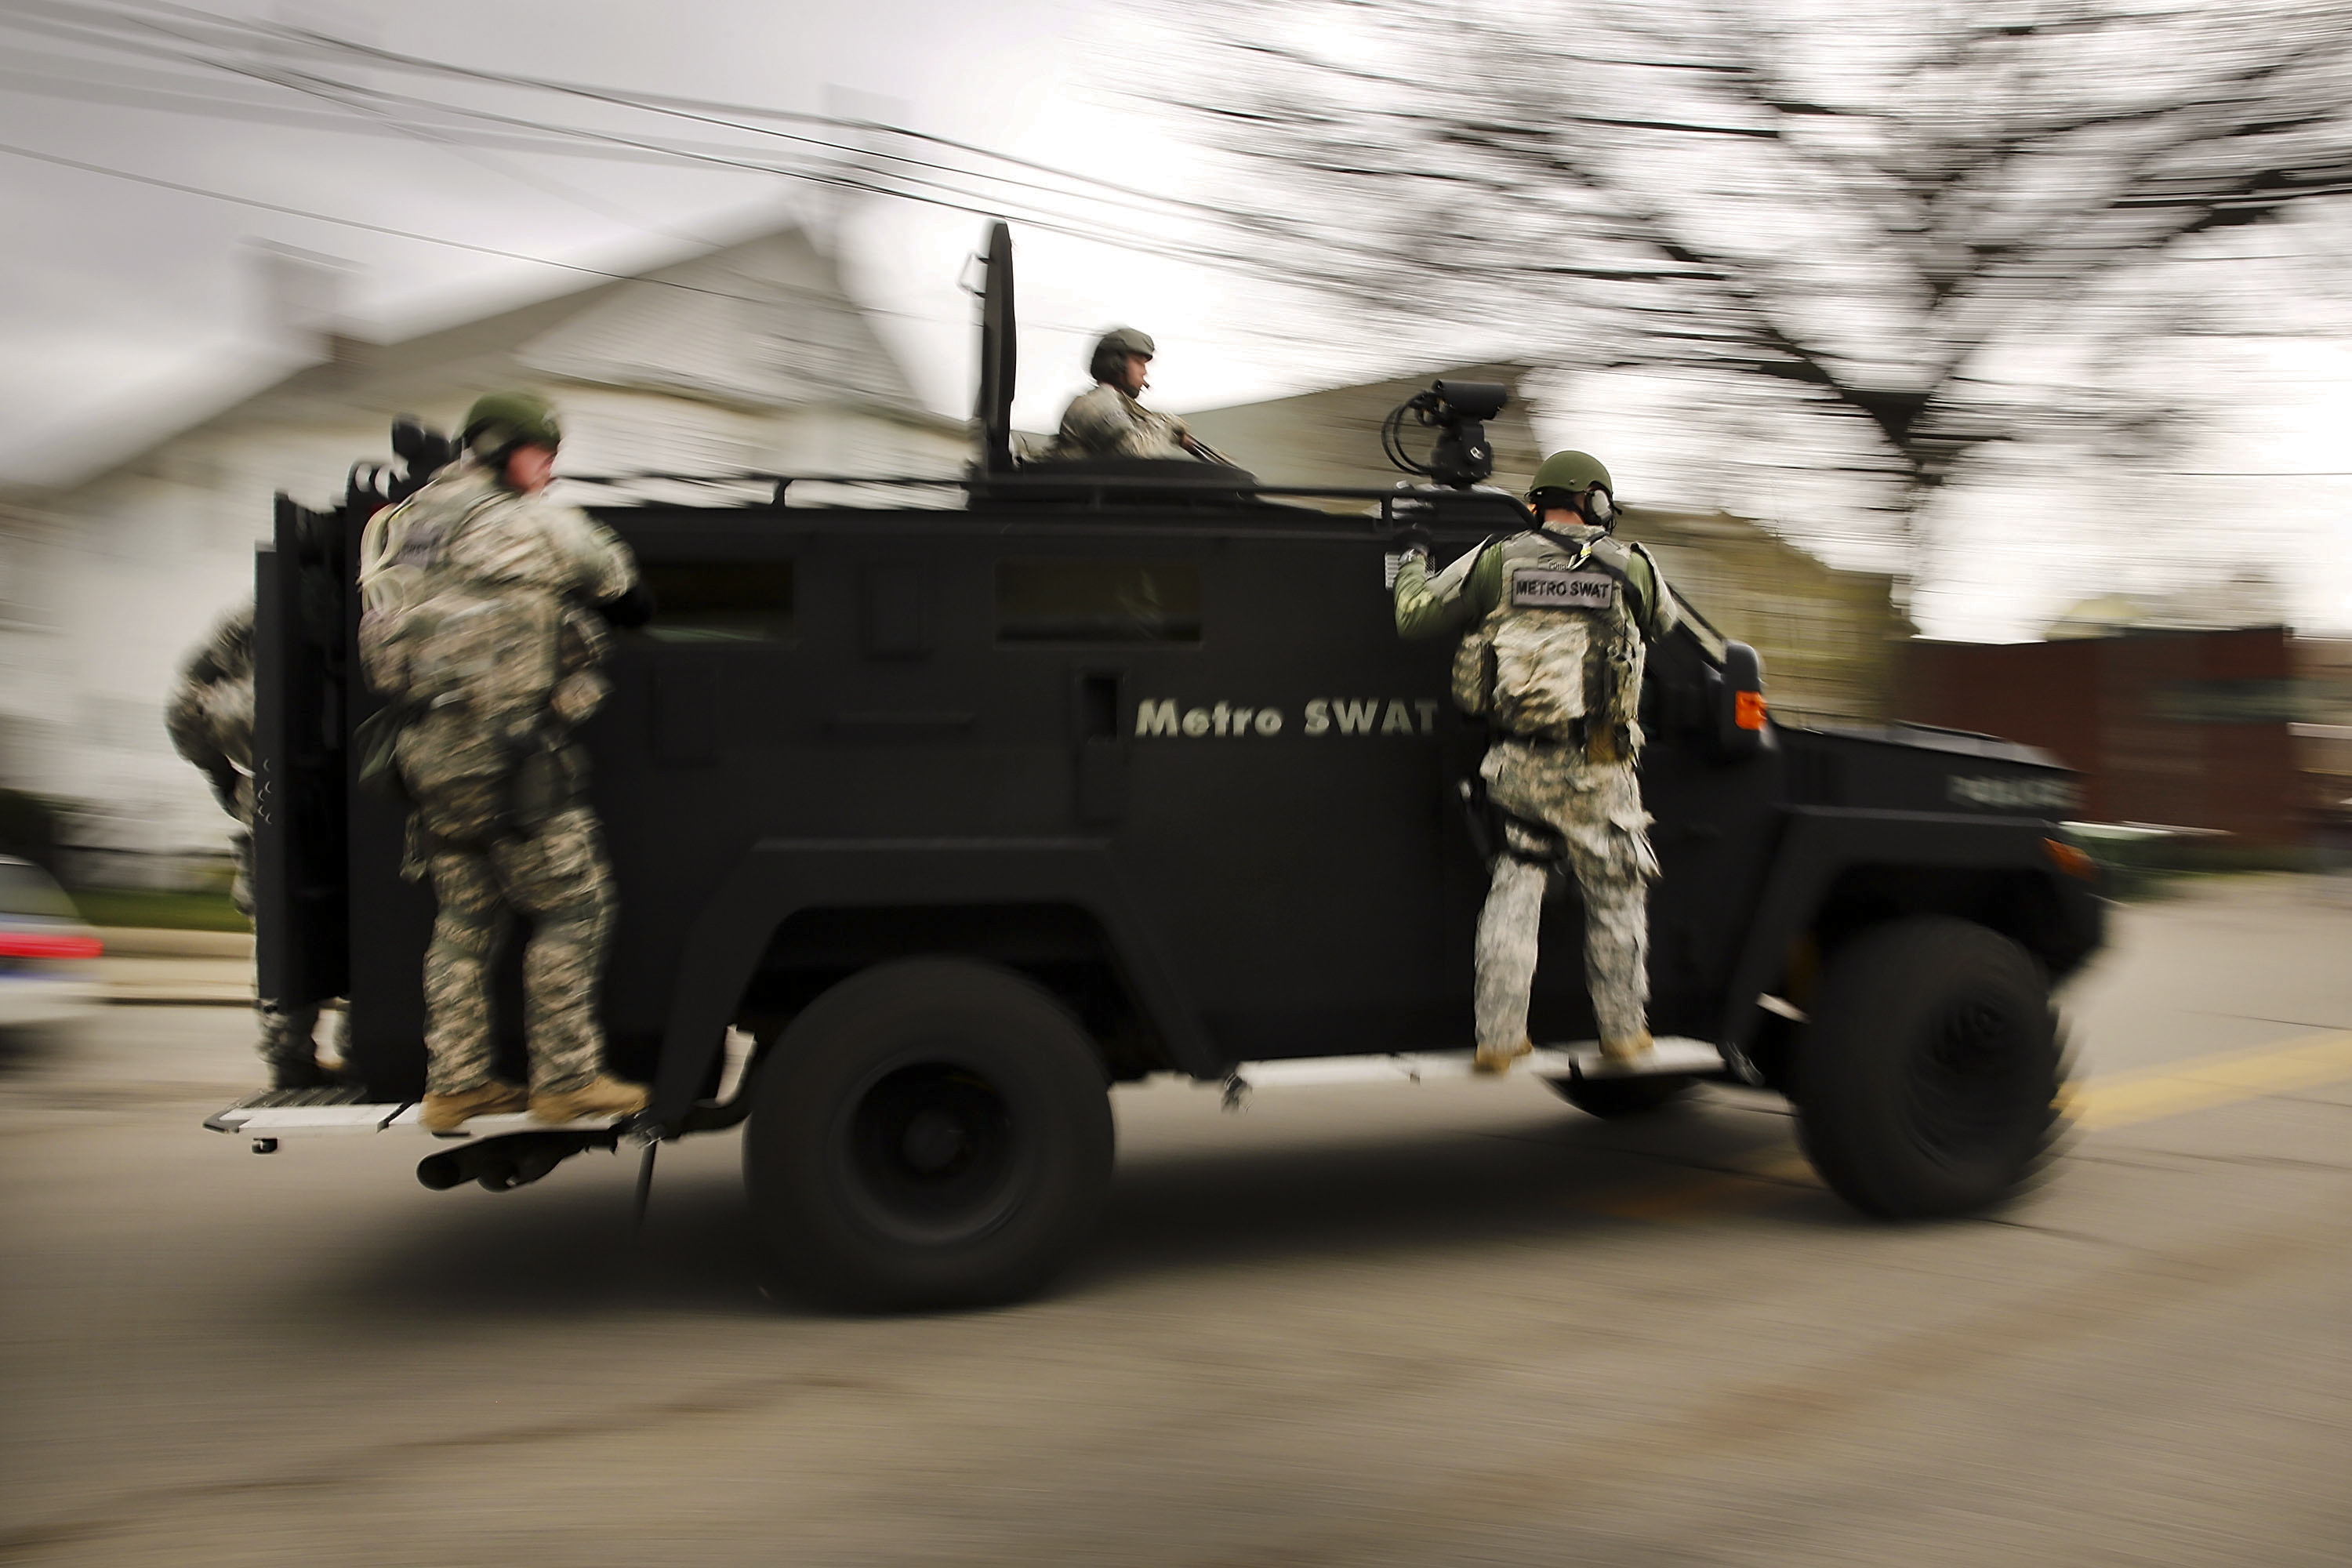 Members of a police S.W.A.T. team search a neighborhood in Watertown.